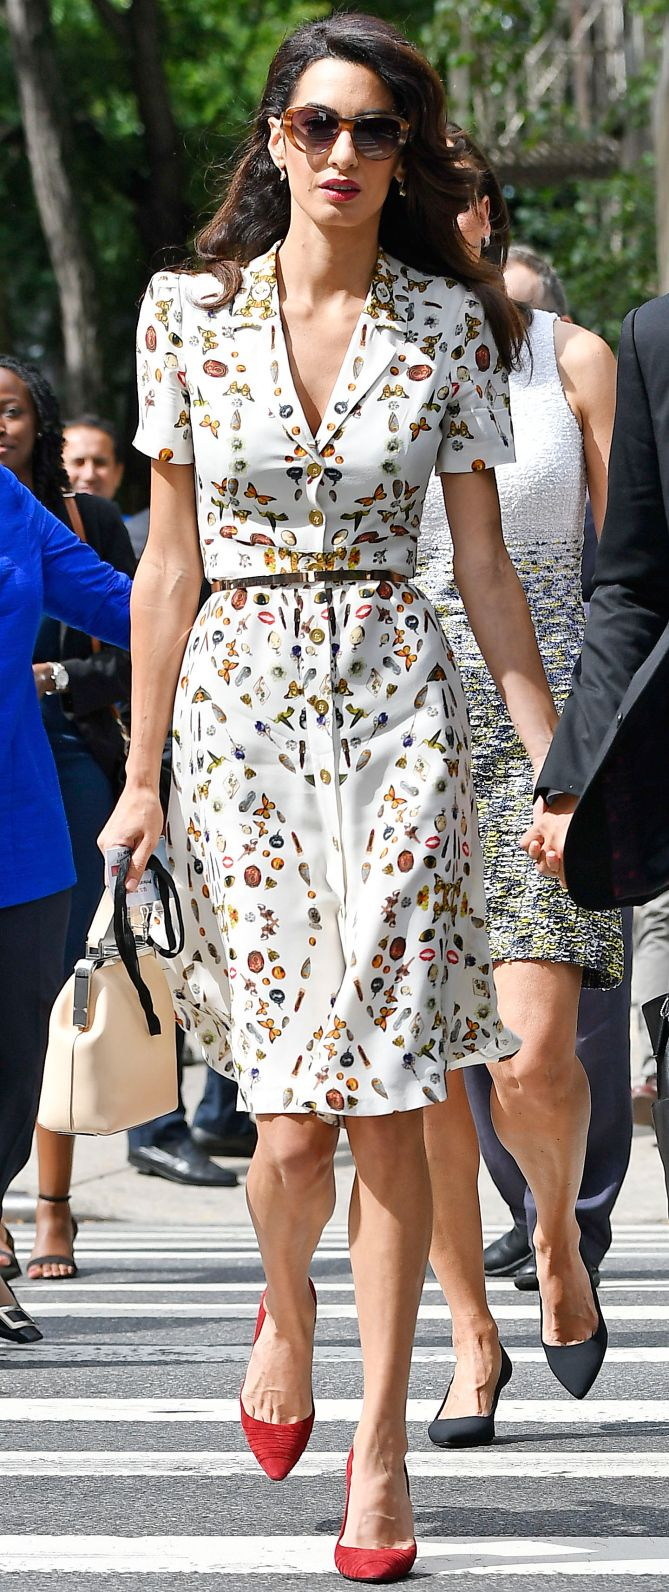 Amal Clooney Brightens Up a Rainy Day, Plus More Can't-Miss Outfits – People